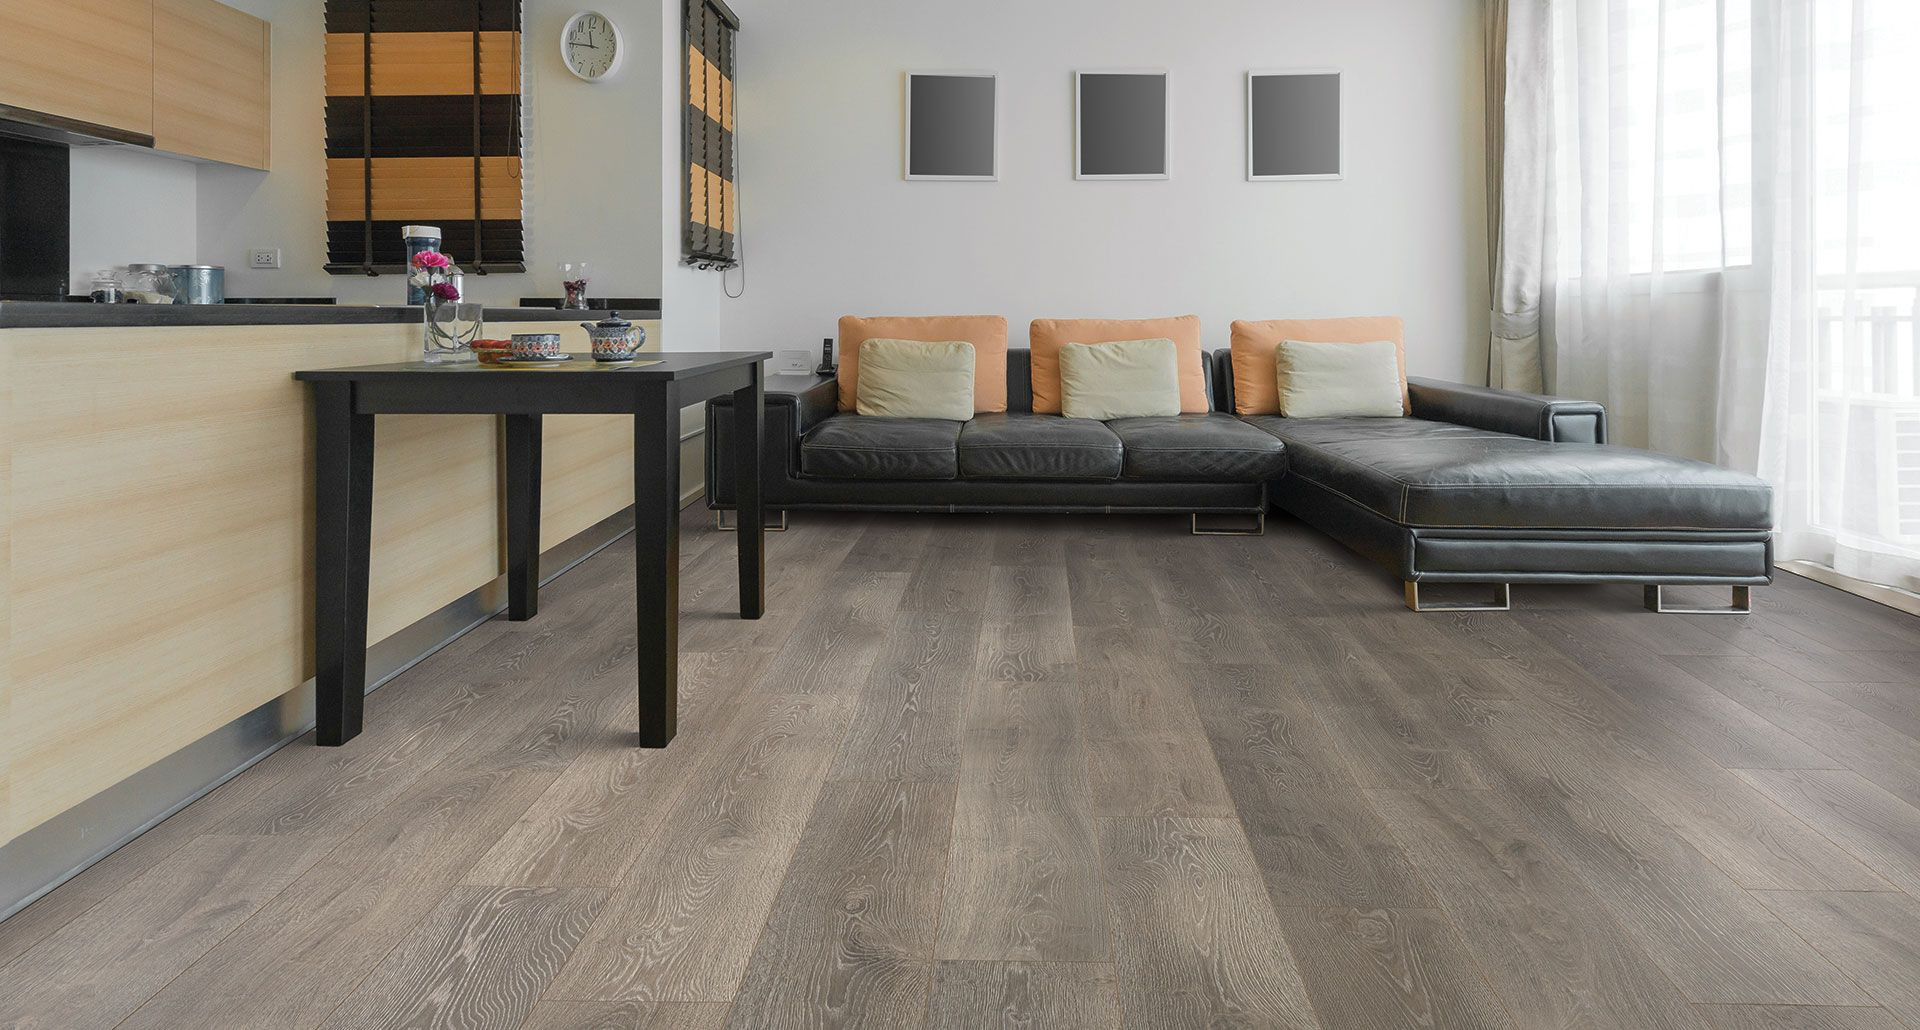 hardwood flooring distributors california of innovative pergo timbercraft laminate flooring with a series of within innovative pergo timbercraft laminate flooring with a series of unique features that create an authentic hardwood look as well as make it durable and easy